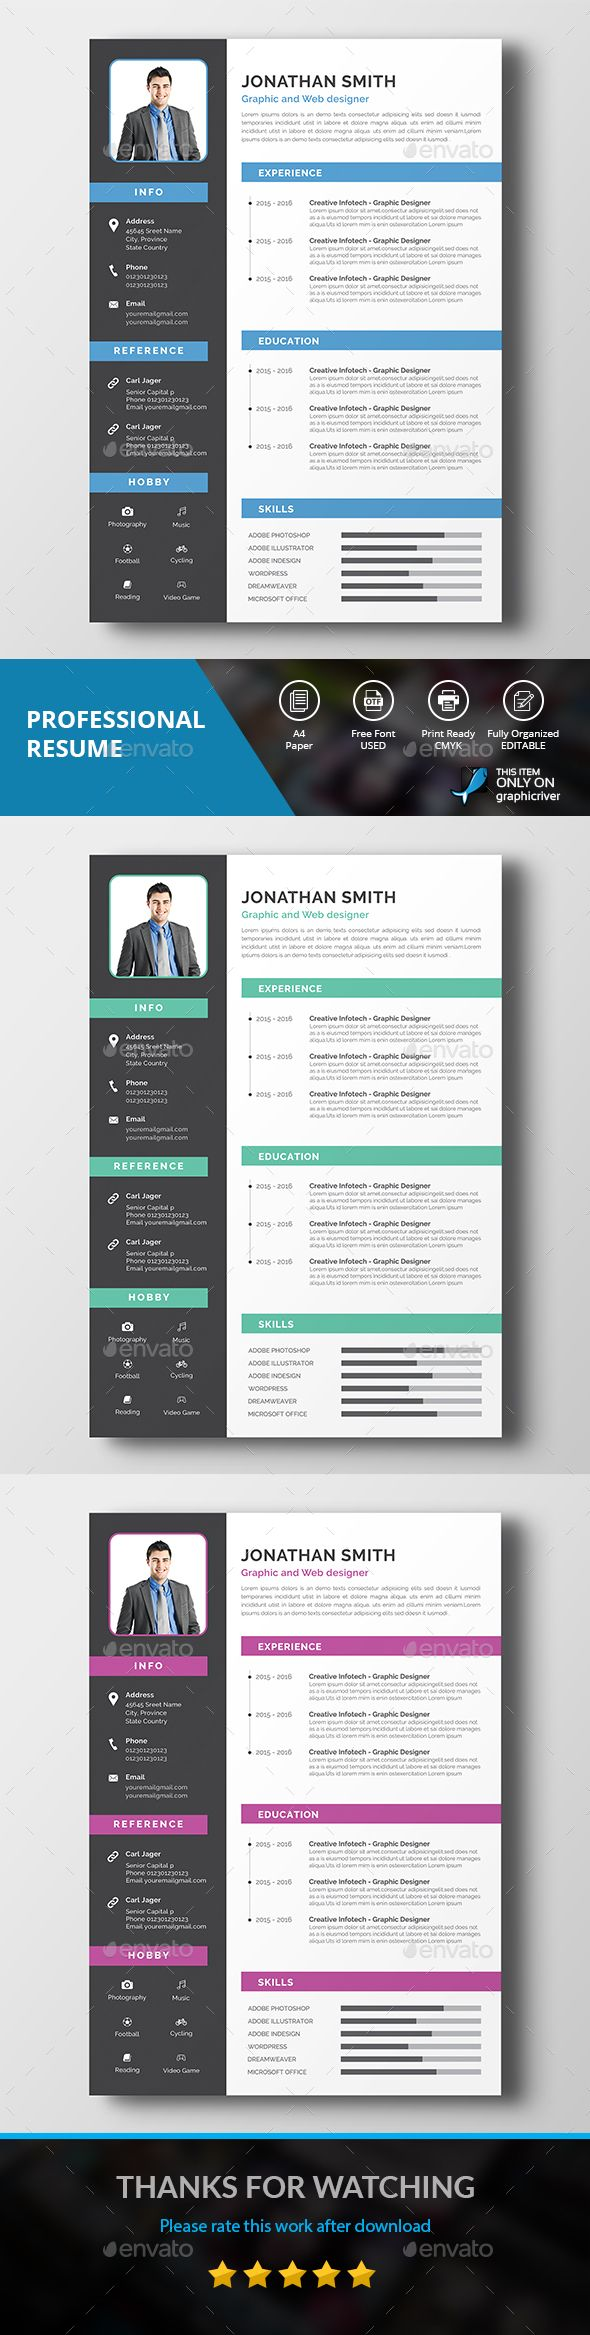 resume cover letter pinterest professional resume design